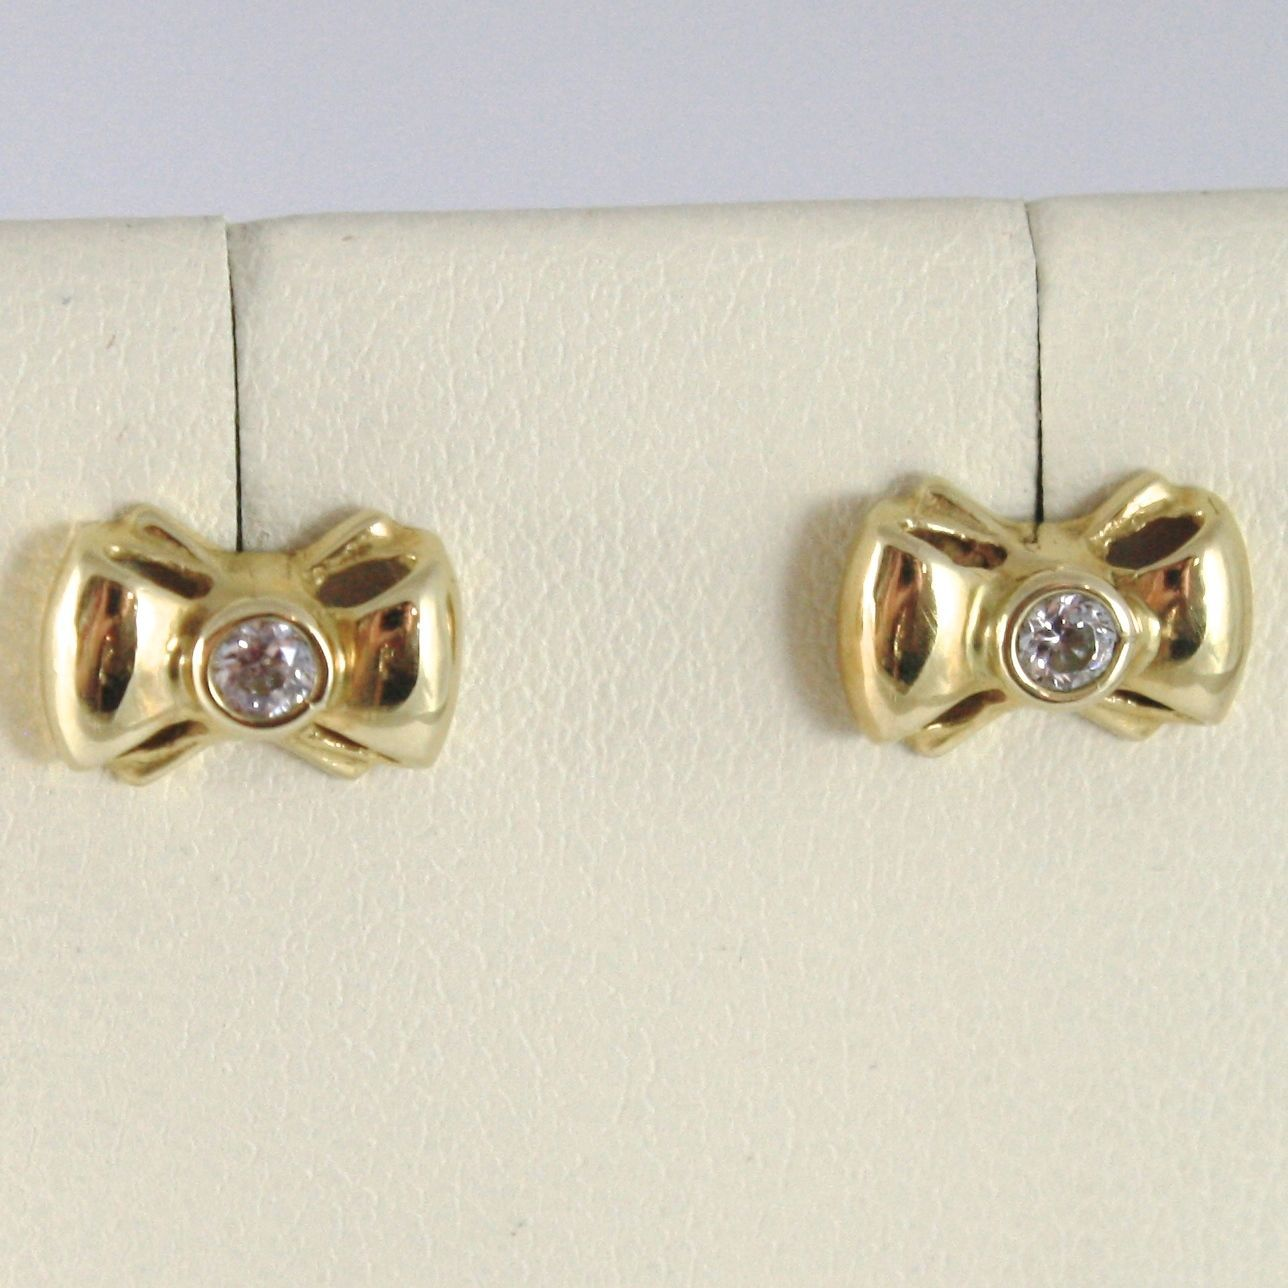 YELLOW GOLD EARRINGS 750 18K, BOW, LONG 0.7 CM, WITH ZIRCON